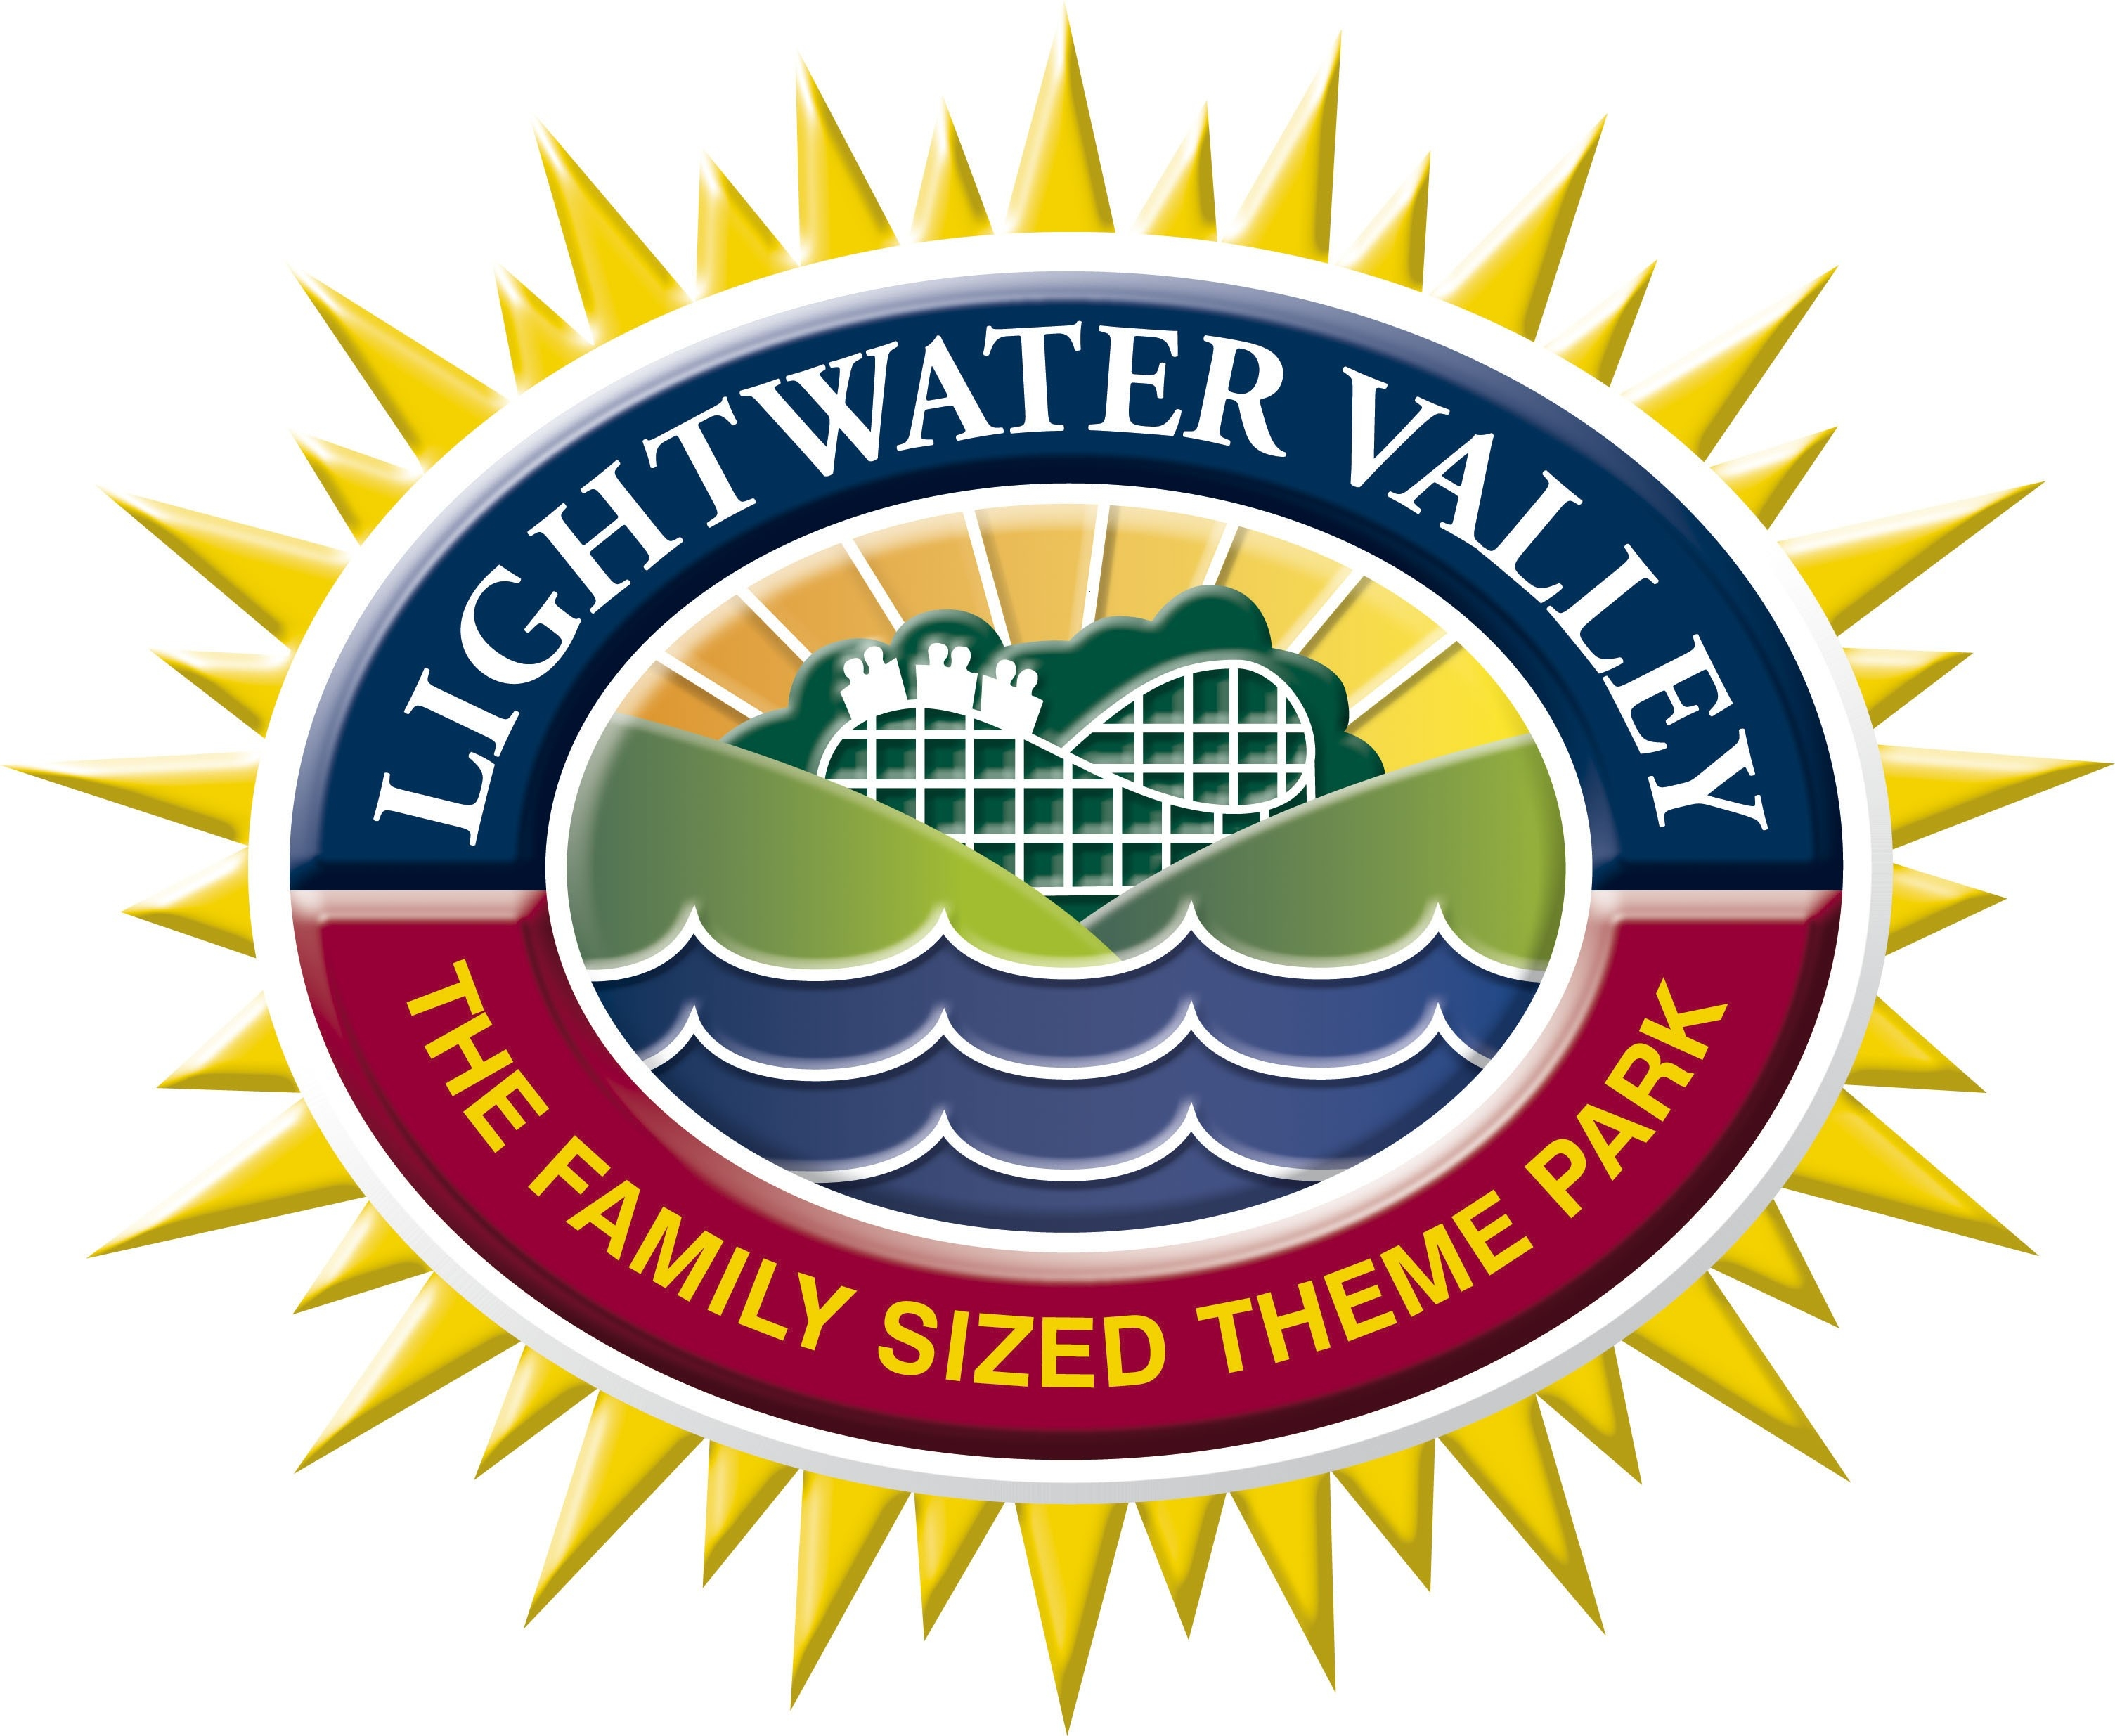 Lightwater_Valley_old_logo